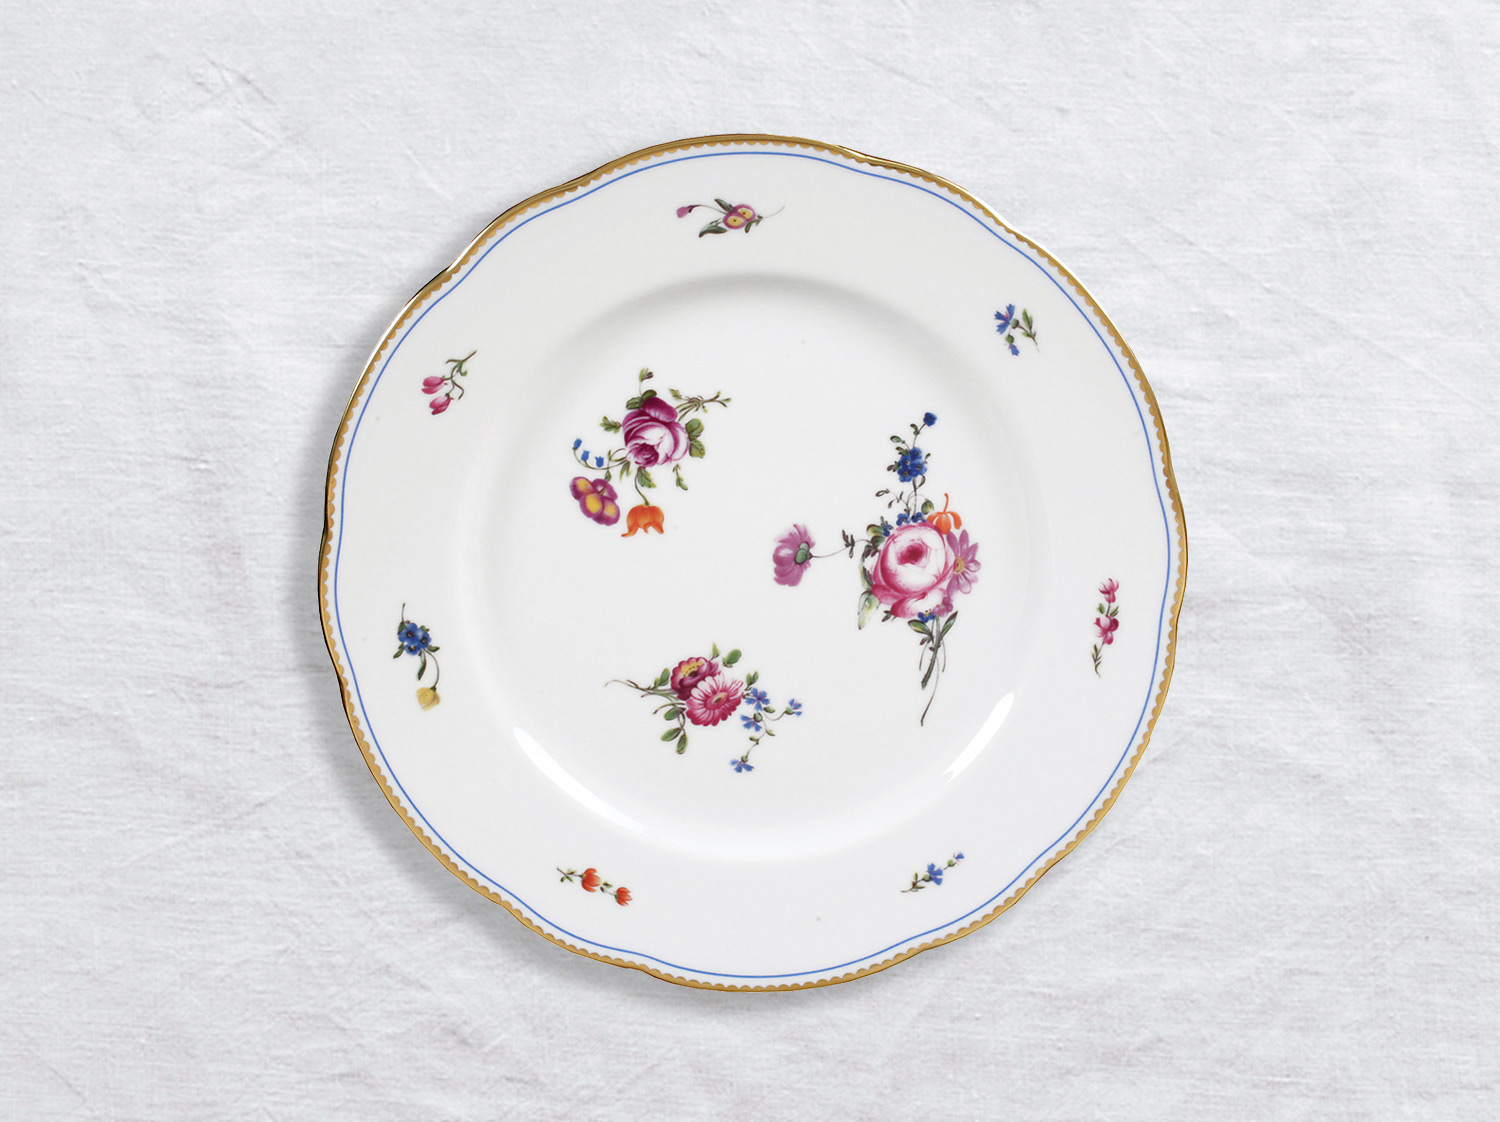 Assiette à dîner 26 cm en porcelaine de la collection A la reine Bernardaud